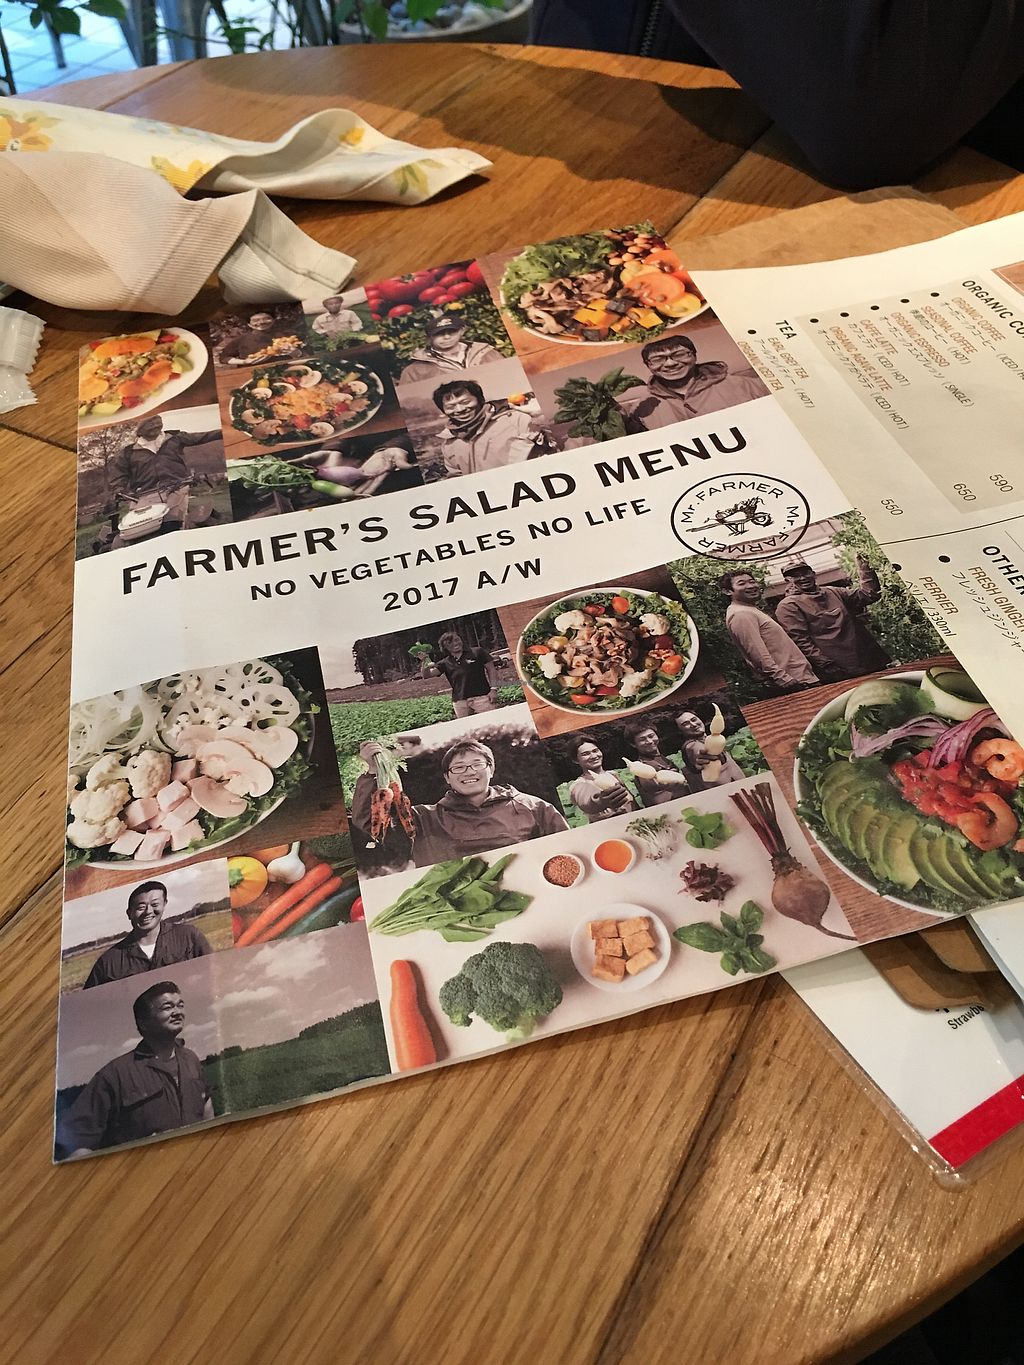 """Photo of Mr. Farmer - Shinjuku  by <a href=""""/members/profile/Siup"""">Siup</a> <br/>Menu  <br/> April 11, 2018  - <a href='/contact/abuse/image/76852/383731'>Report</a>"""